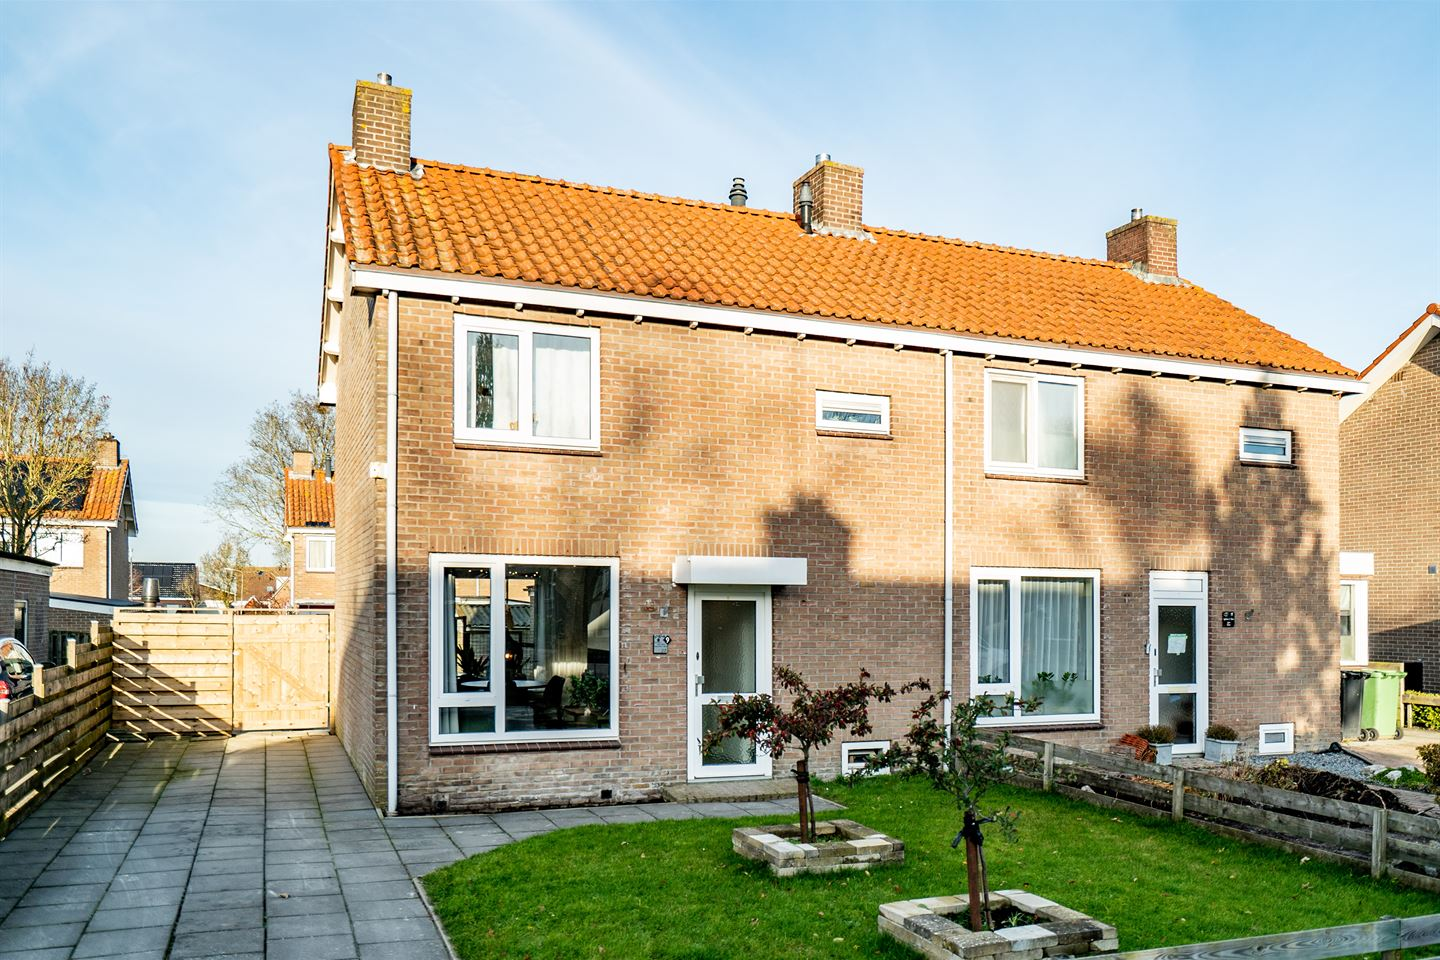 View photo 1 of Jacobus van der Waeyenstraat 9